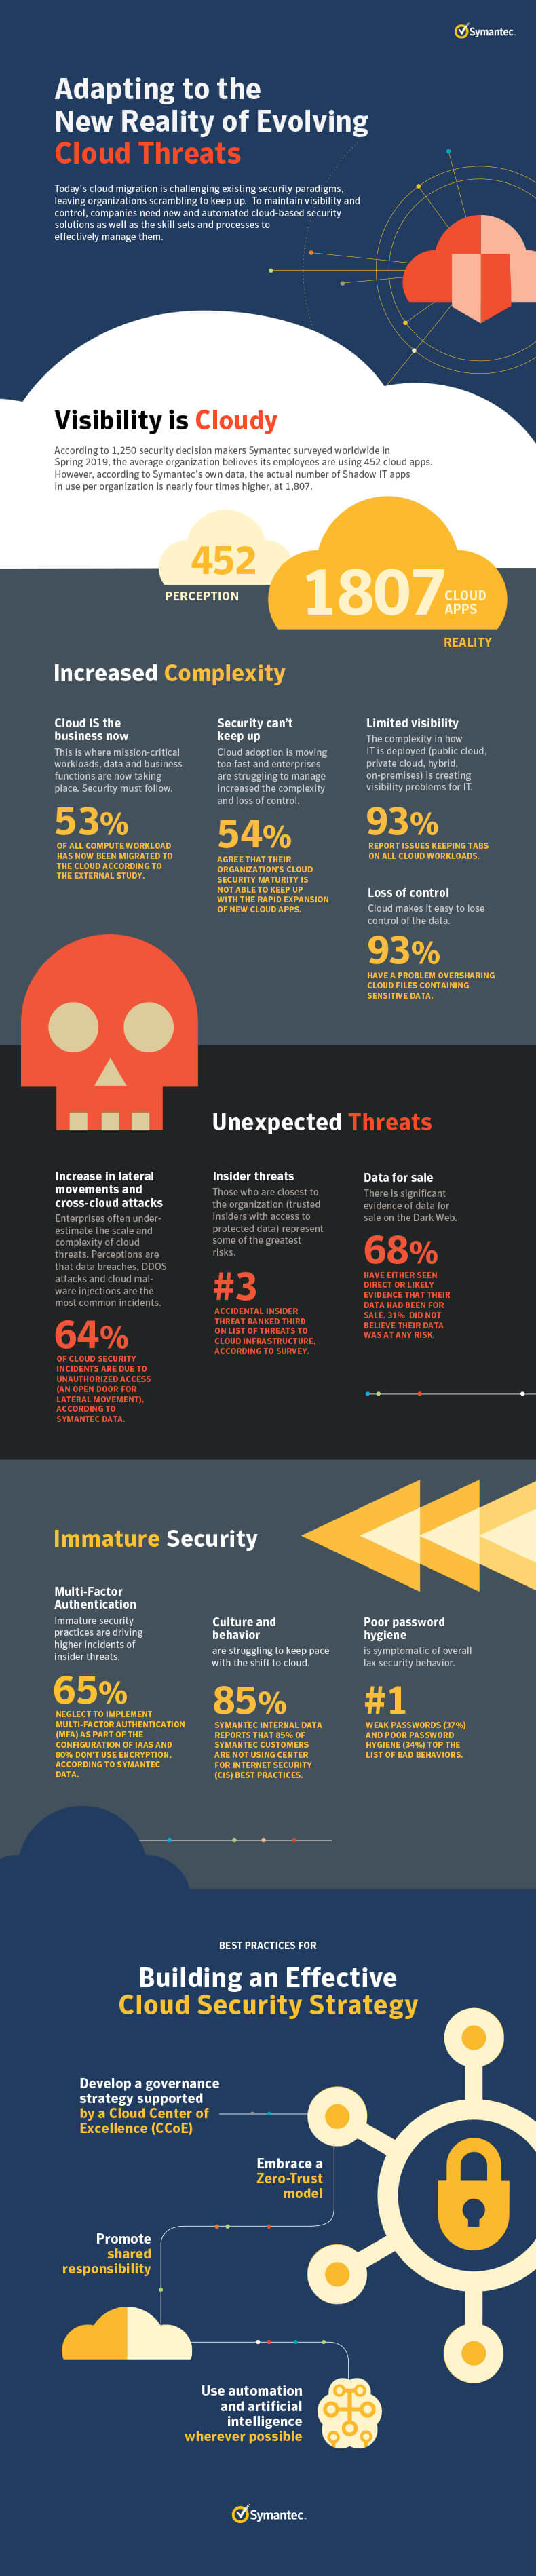 Infographic for Adapting to the New Reality of Cloud Threats  as described below